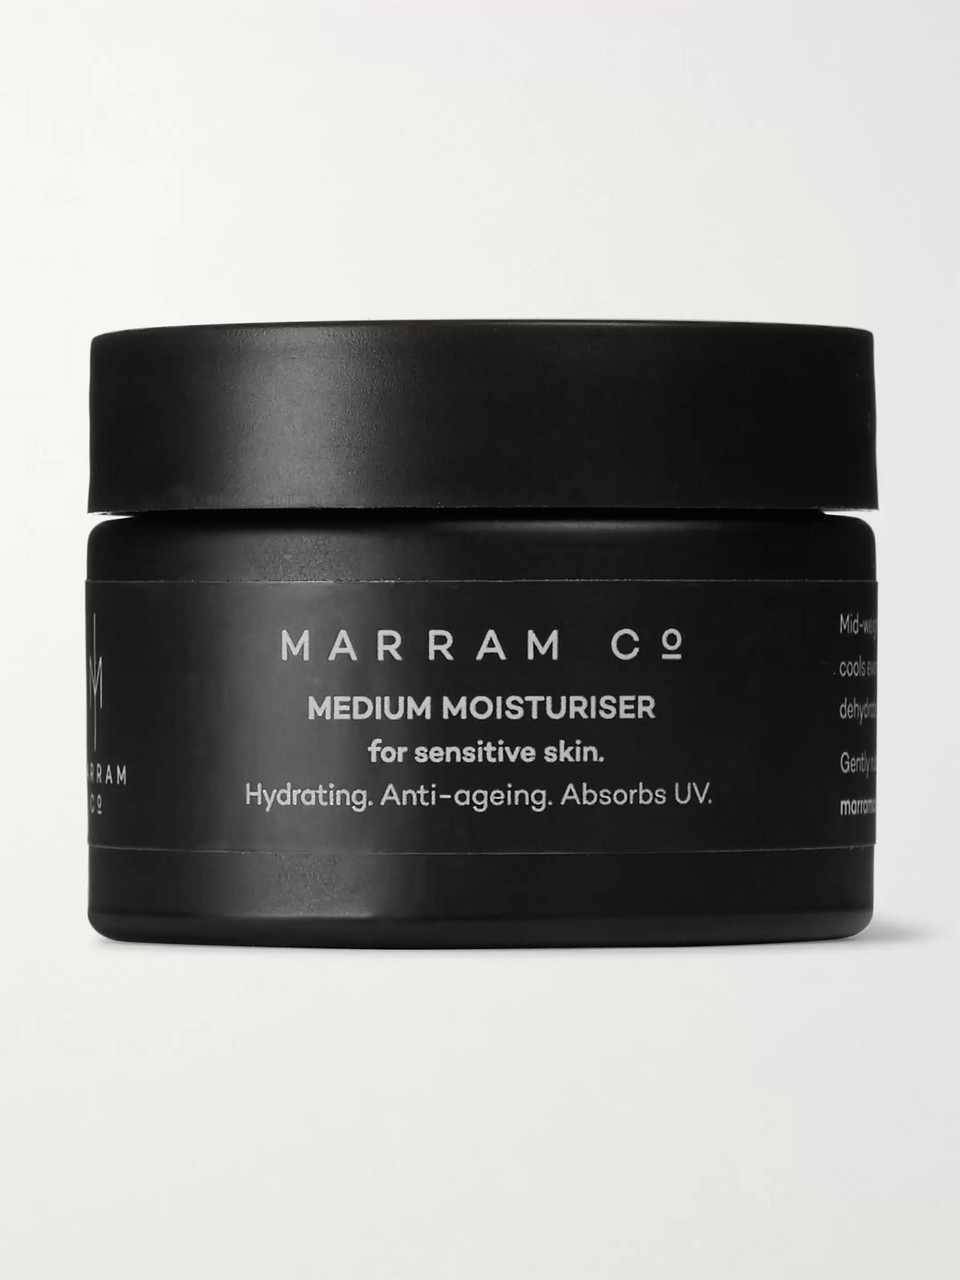 Marram Co Medium Moisturiser, 50ml